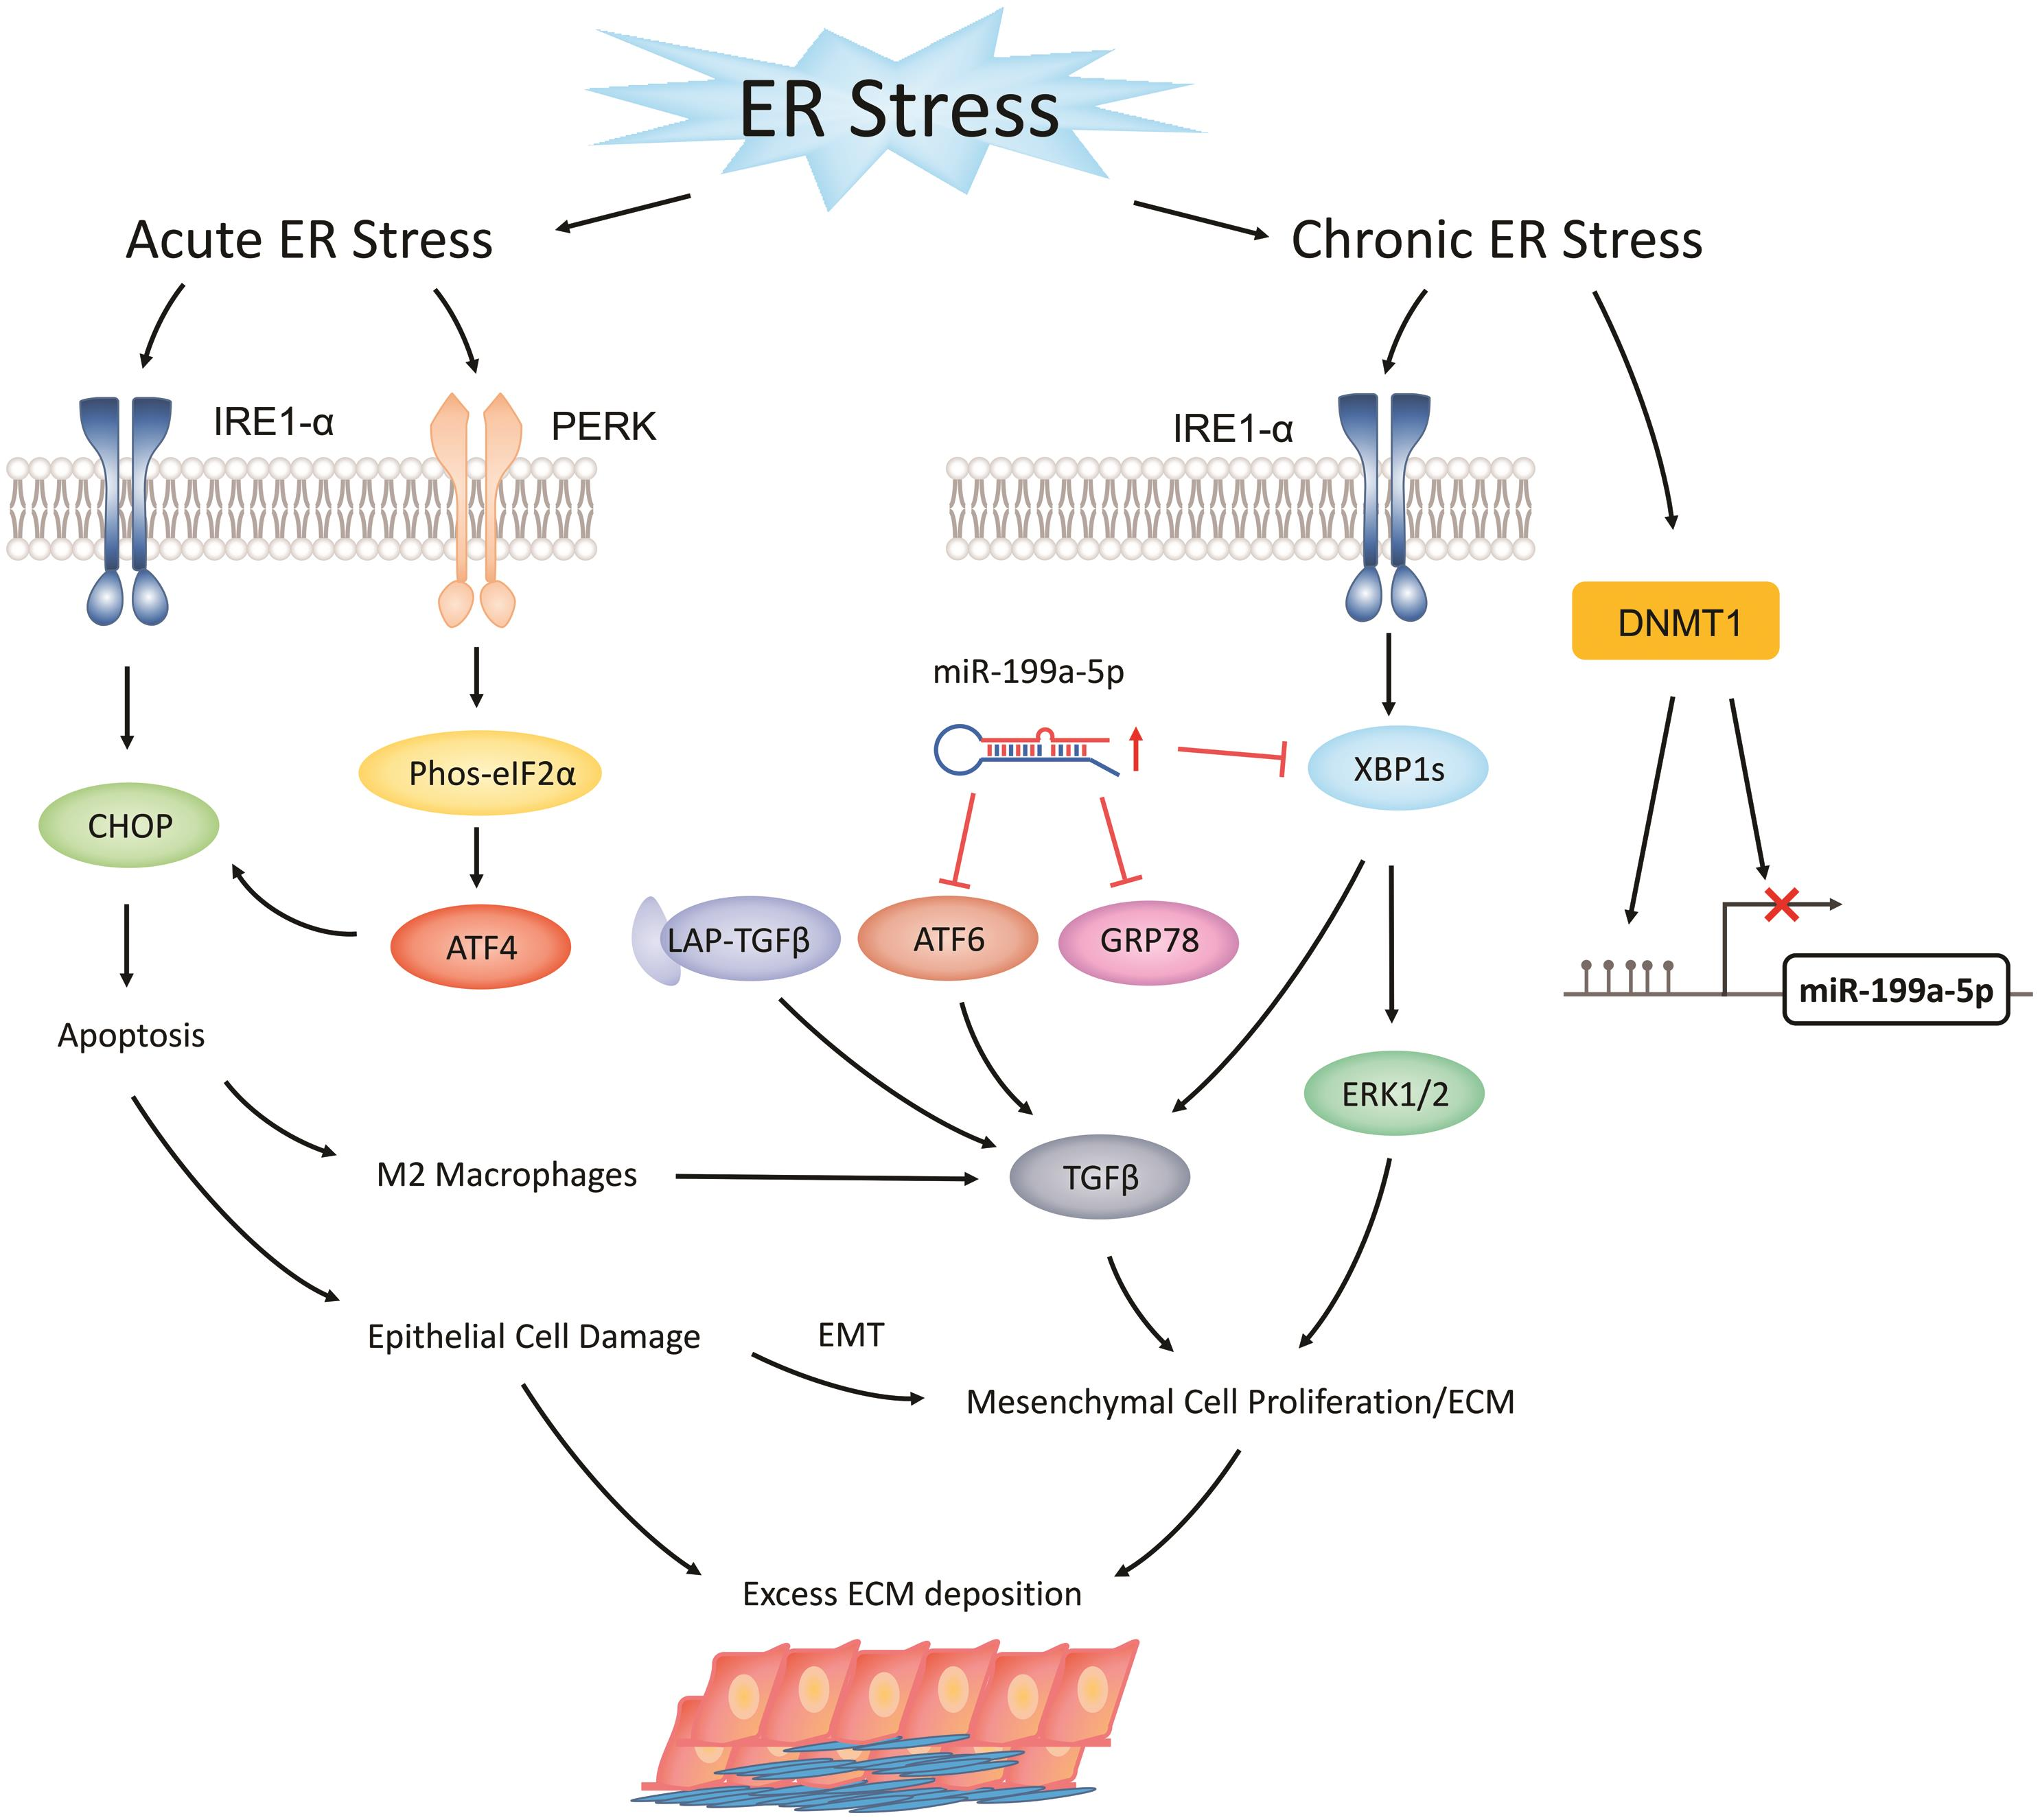 The Role of Endoplasmic Reticulum Stress in the Development